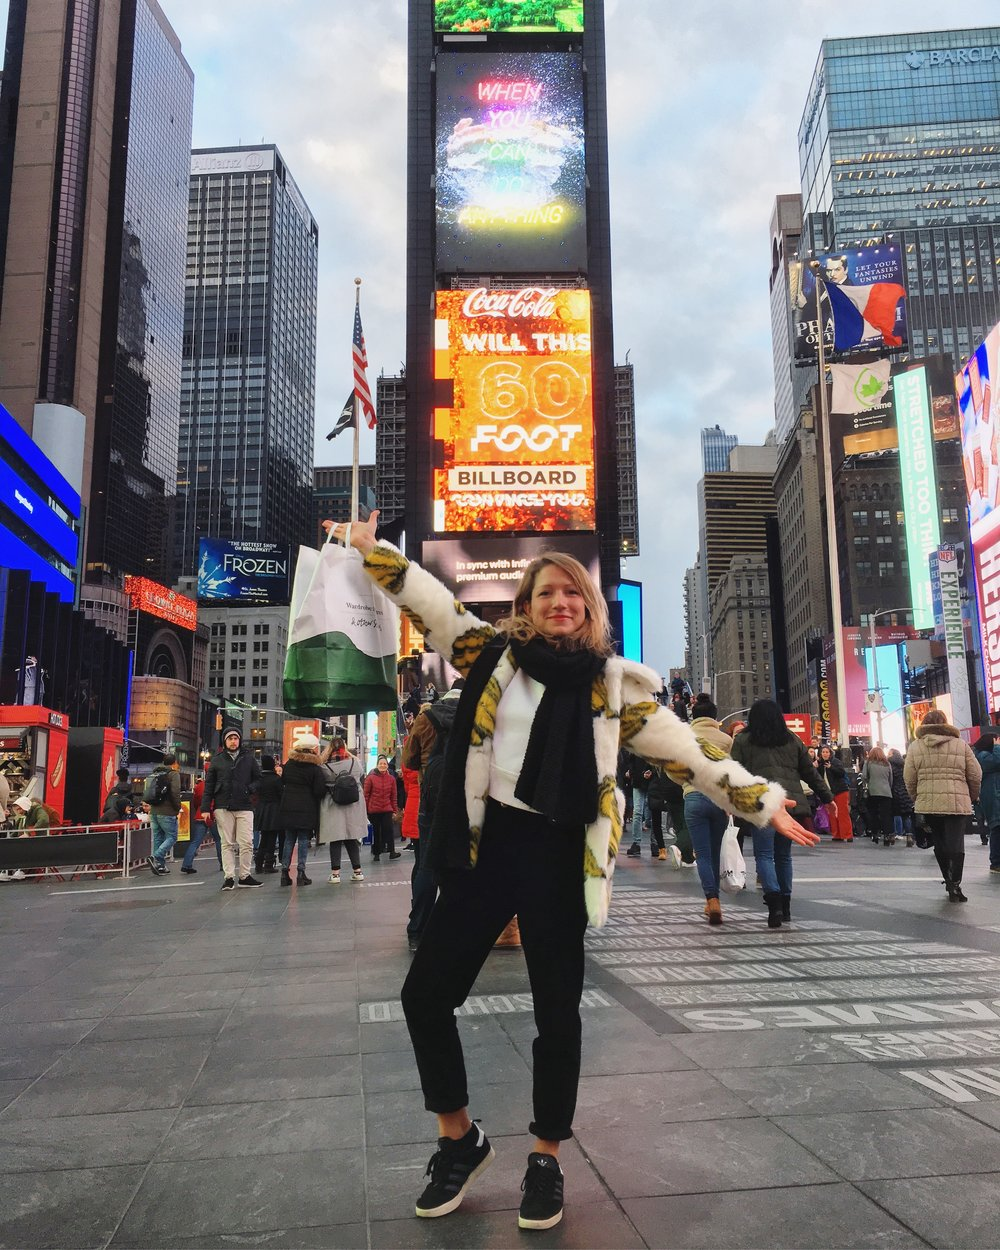 effect of new contract + shopping + banana fur on me 🤣 - #TimeSquare